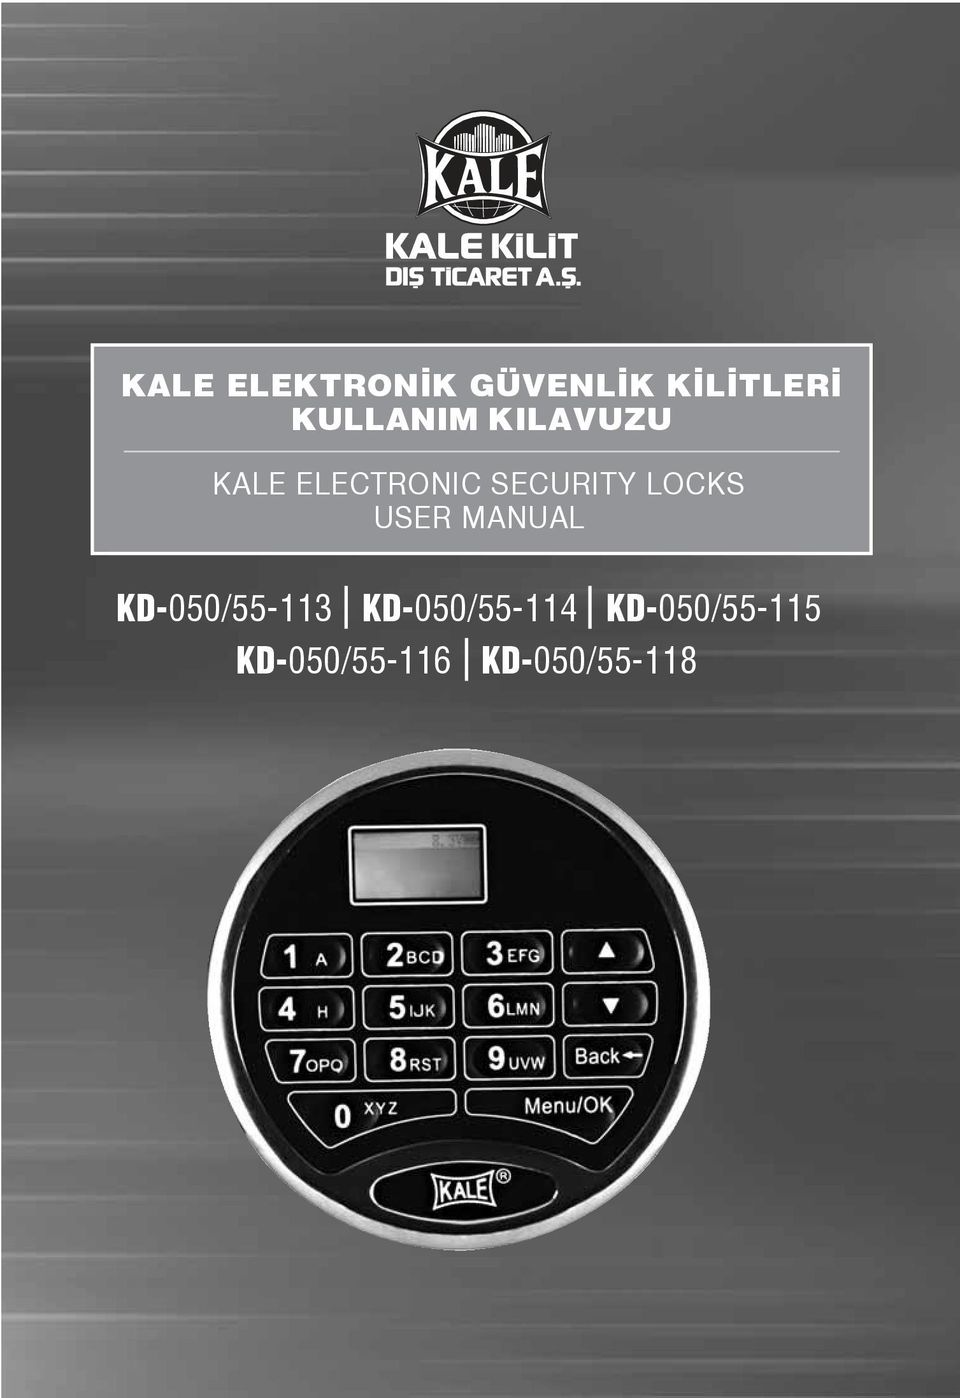 SECURITY LOCKS USER MANUAL KD-050/55-113